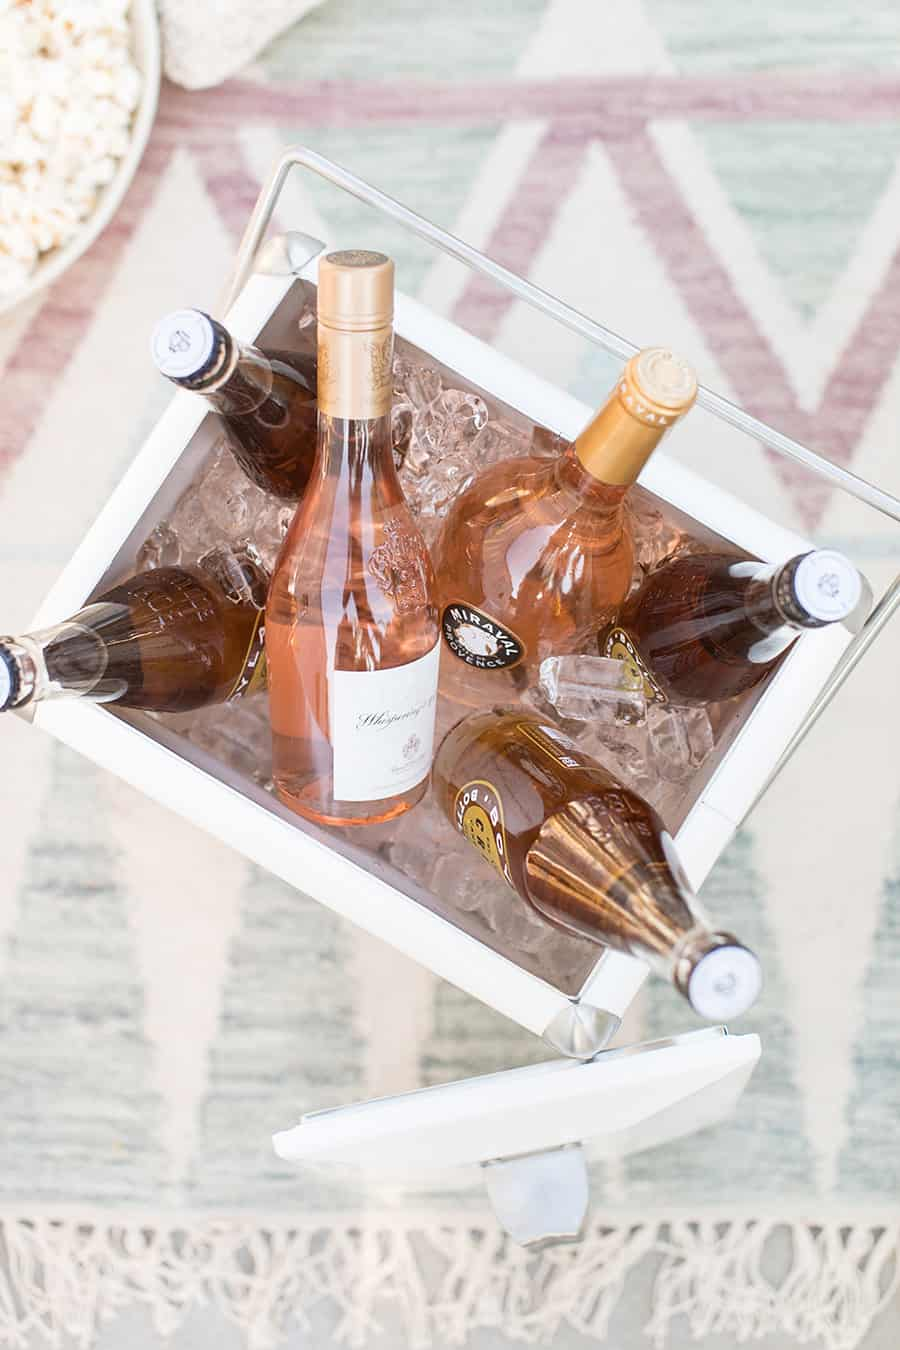 cooler filled with ice and bottles of rosé.